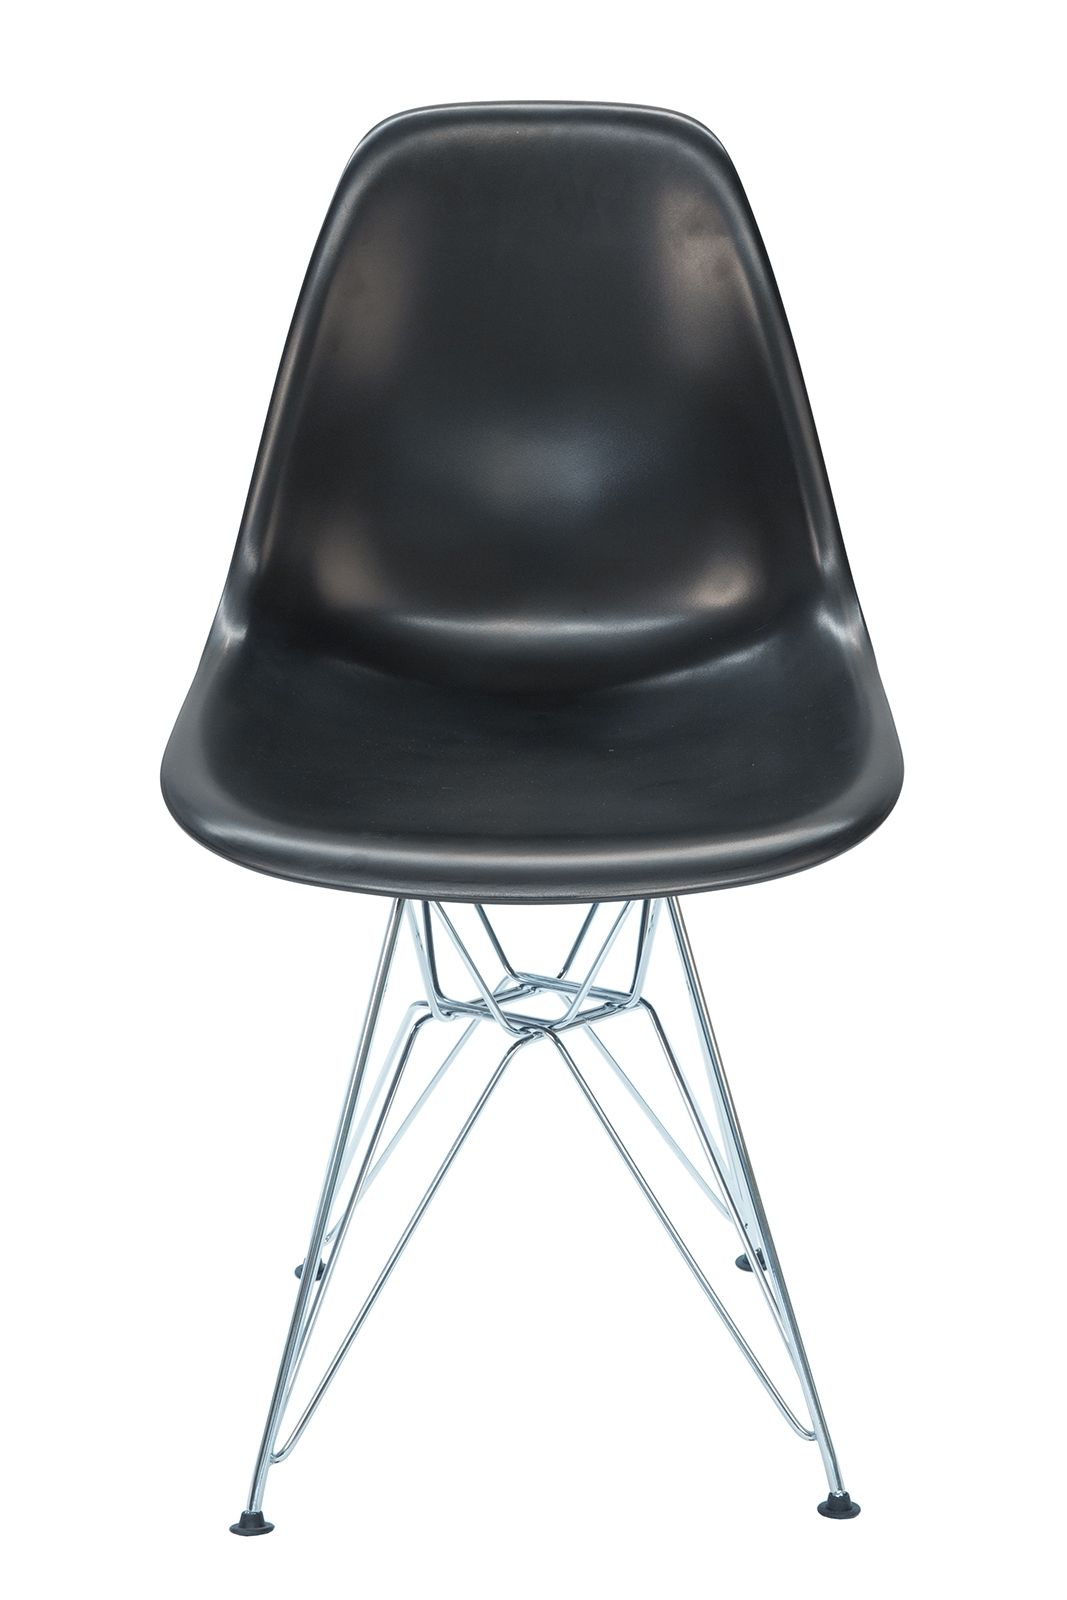 Replica Eames DSR Eiffel Chair & Chrome Legs | Black